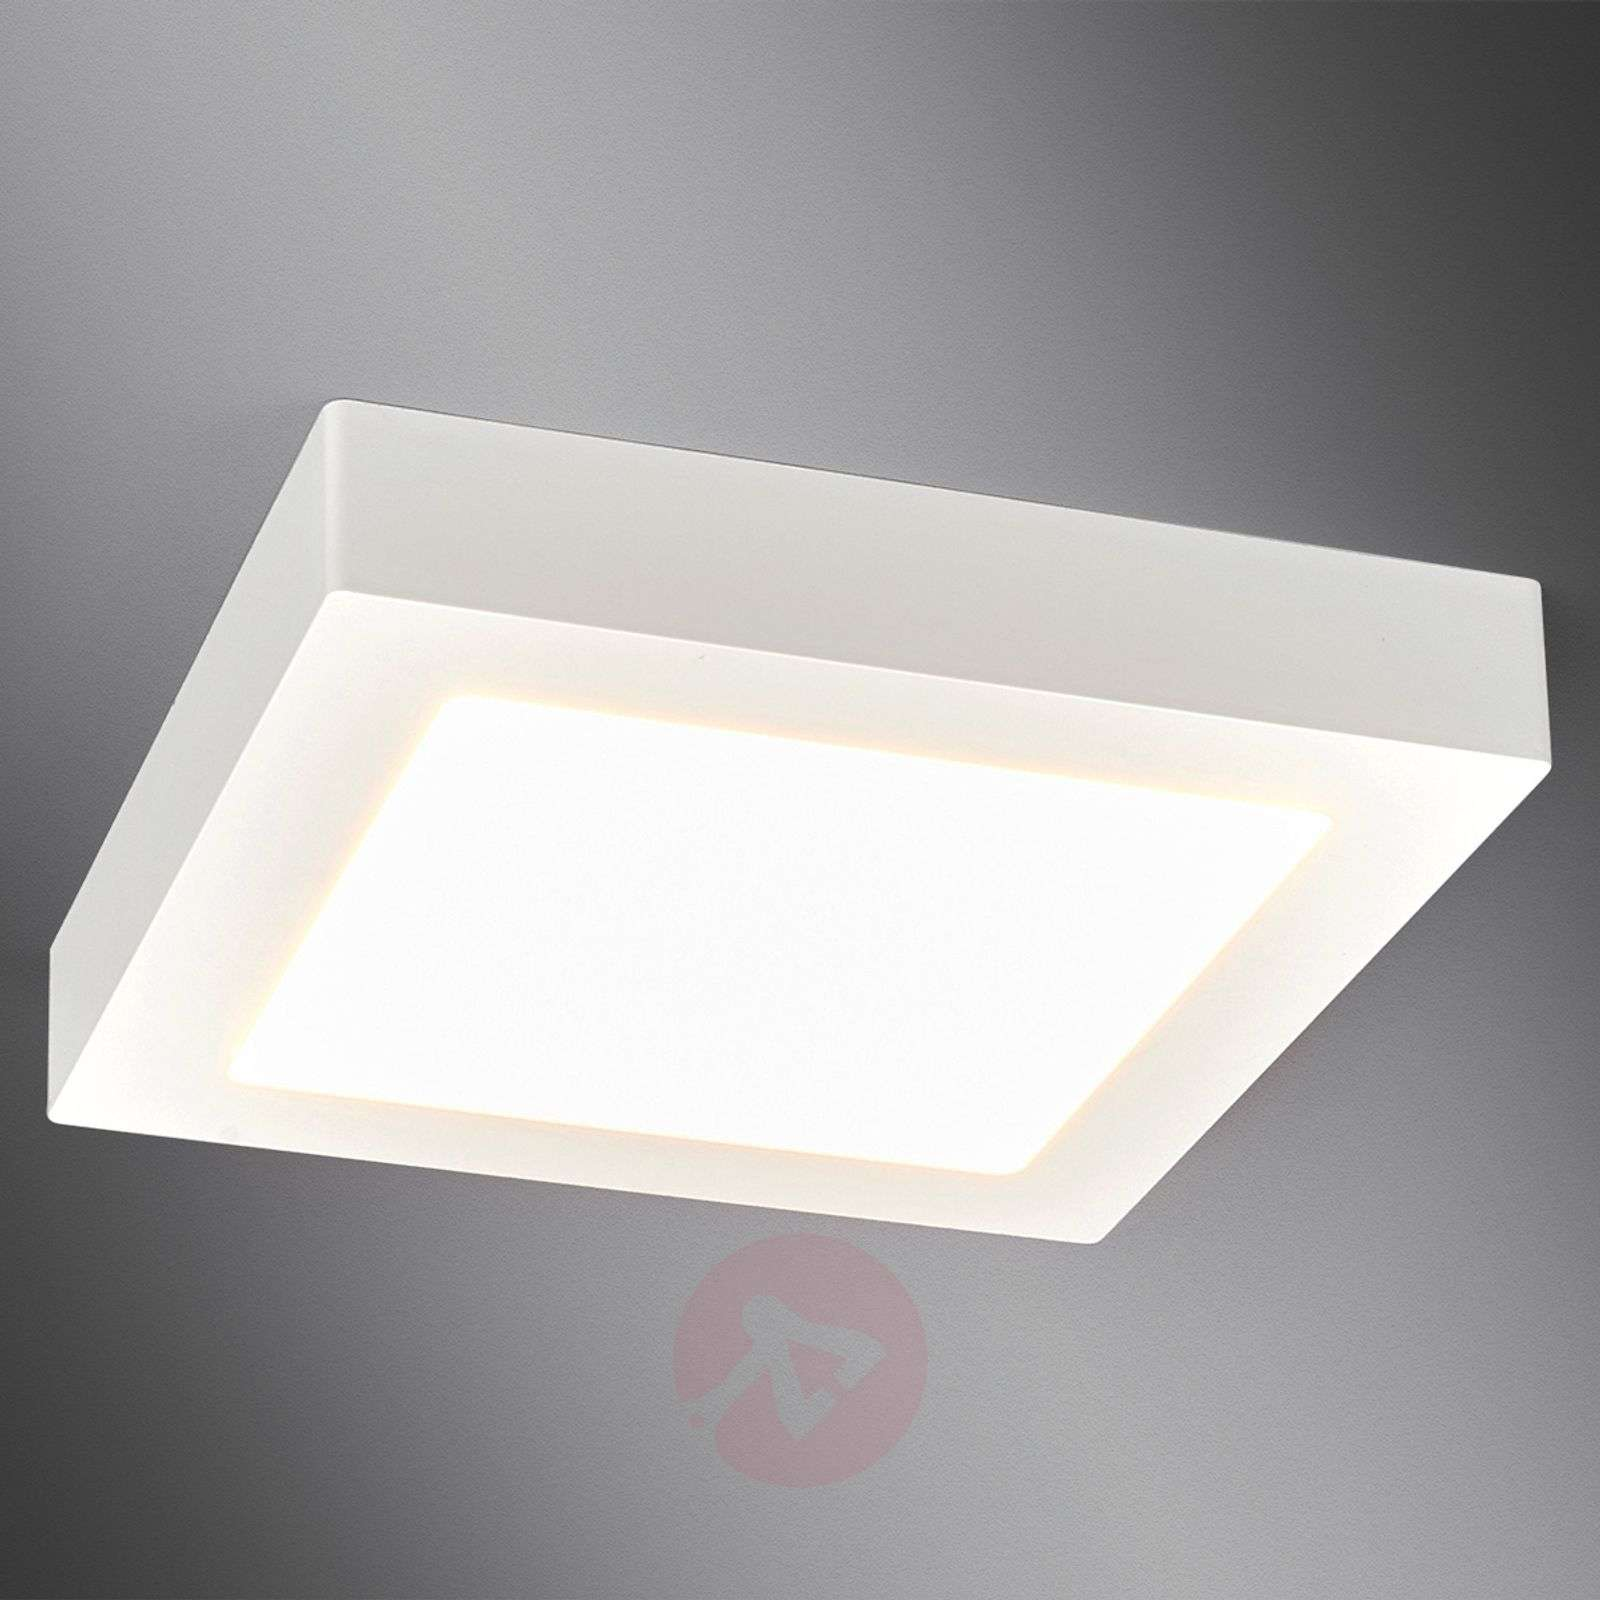 square bathroom lights white square led bathroom ceiling light rayan lights co uk 14537 | white square led bathroom ceiling light rayan 9978024 311